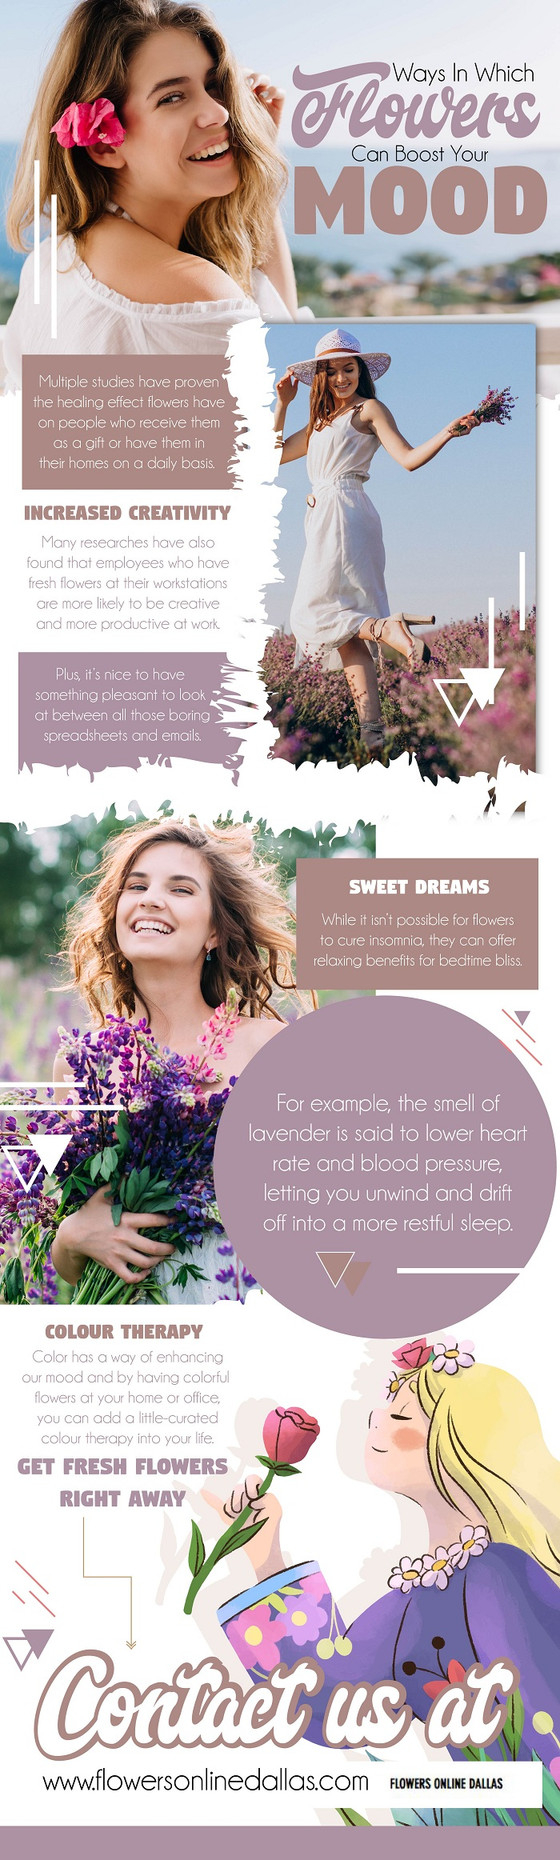 Ways in Which Flowers Can Boost Your Mood